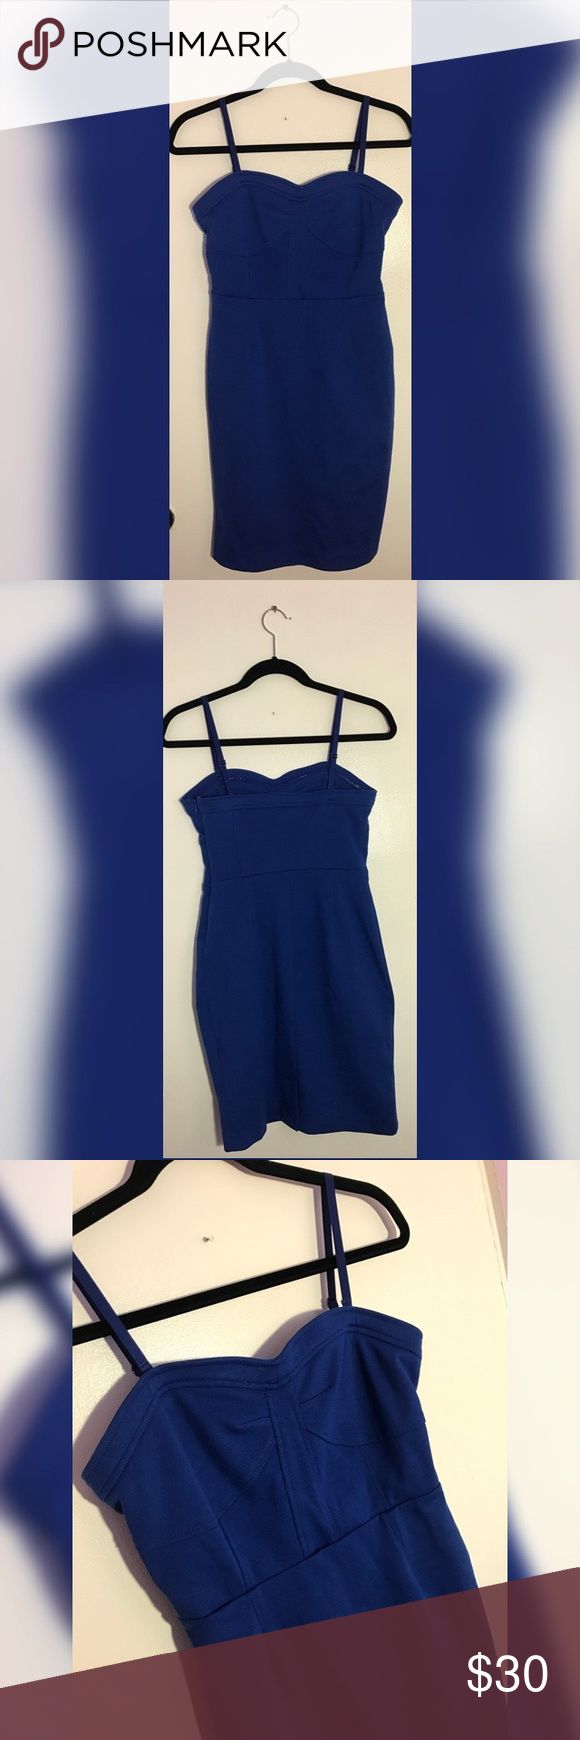 "Sofia Vergara Fitted with stretch Pencil Dress Super Cute Cobalt Blue Bodycon Dress. Zipper on the left. Beautiful cut in the front. Has rubber on the inside of Dress by bra area to be worn strapless as well.  Measurements (approximate) Length: 33"" Sofia Vergara Dresses Midi"